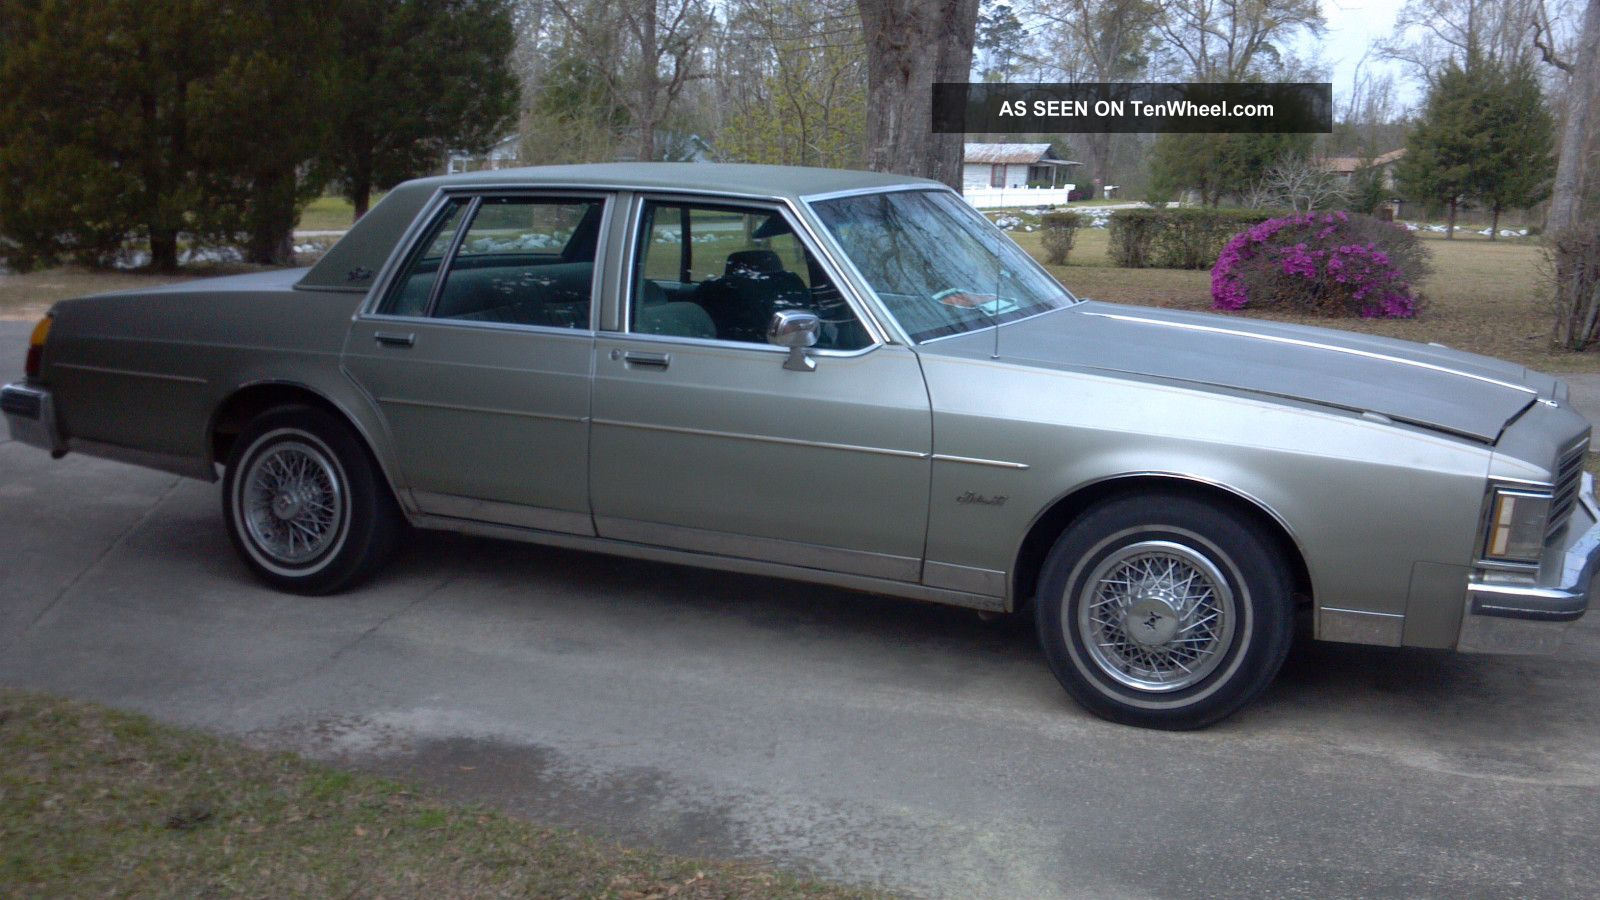 1985 Oldsmobile Delta 88 in addition Diagram Of Serpentine Belt 2008 Mercedes E350 likewise Jaguar S Type Heater Control Valve Location furthermore W211 Mercedes Serpentine Belt Diagram furthermore Mercedes Benz C220 Engine Diagram. on mercedes e350 serpentine belt diagram